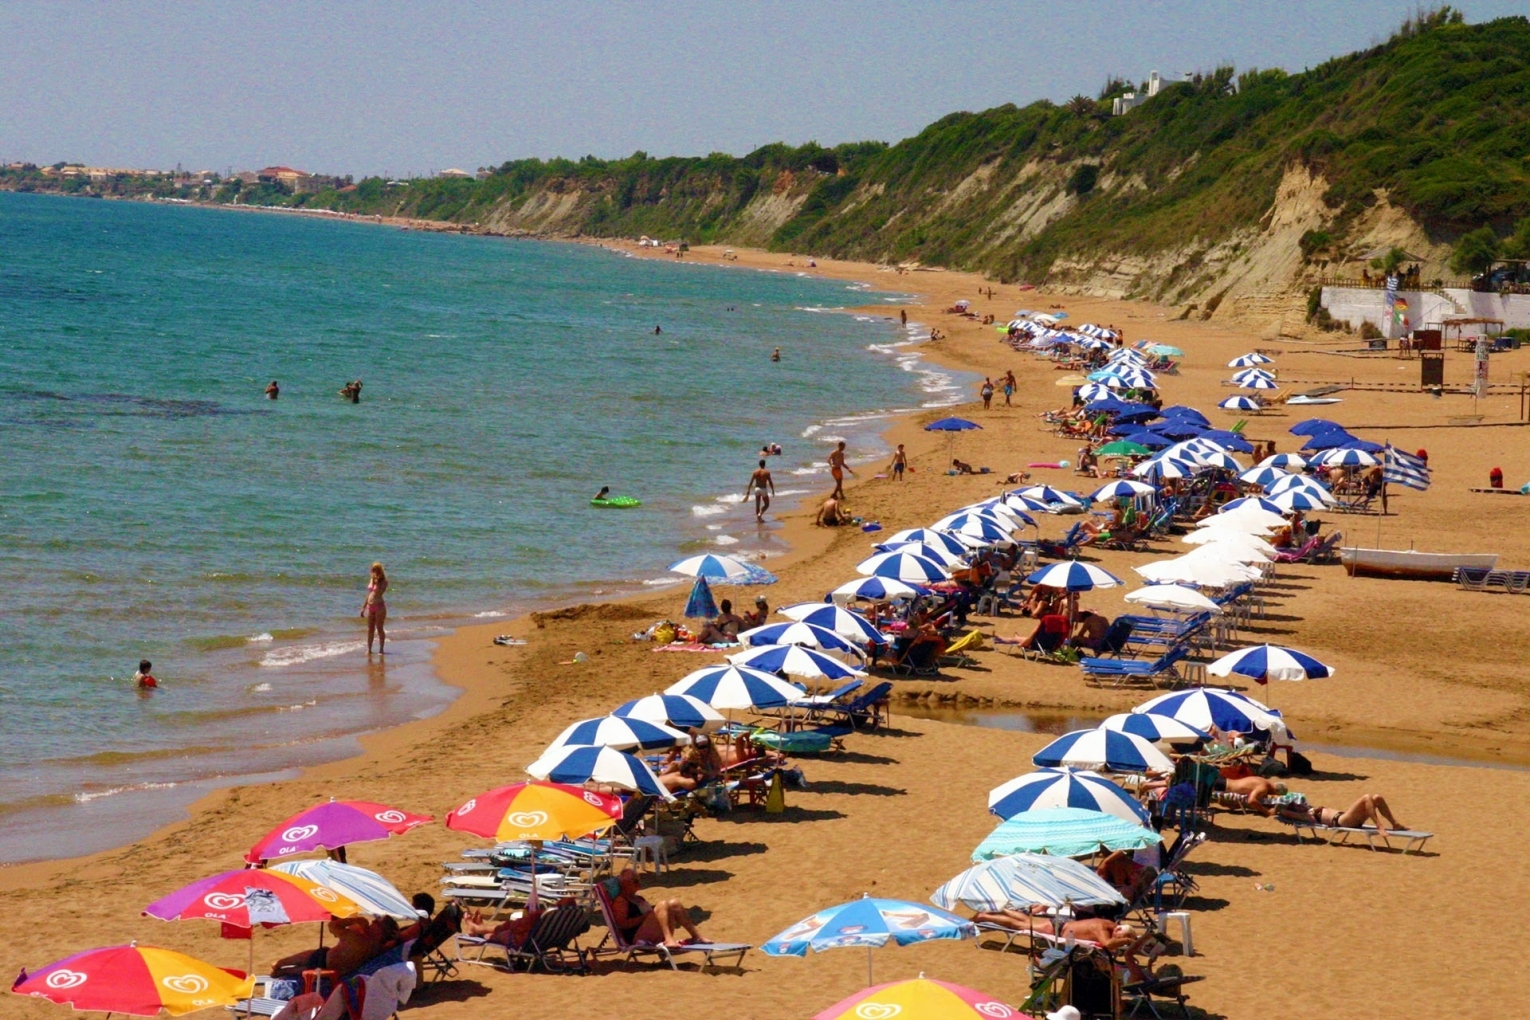 gallery/corfu-santa-barbara-beach-1